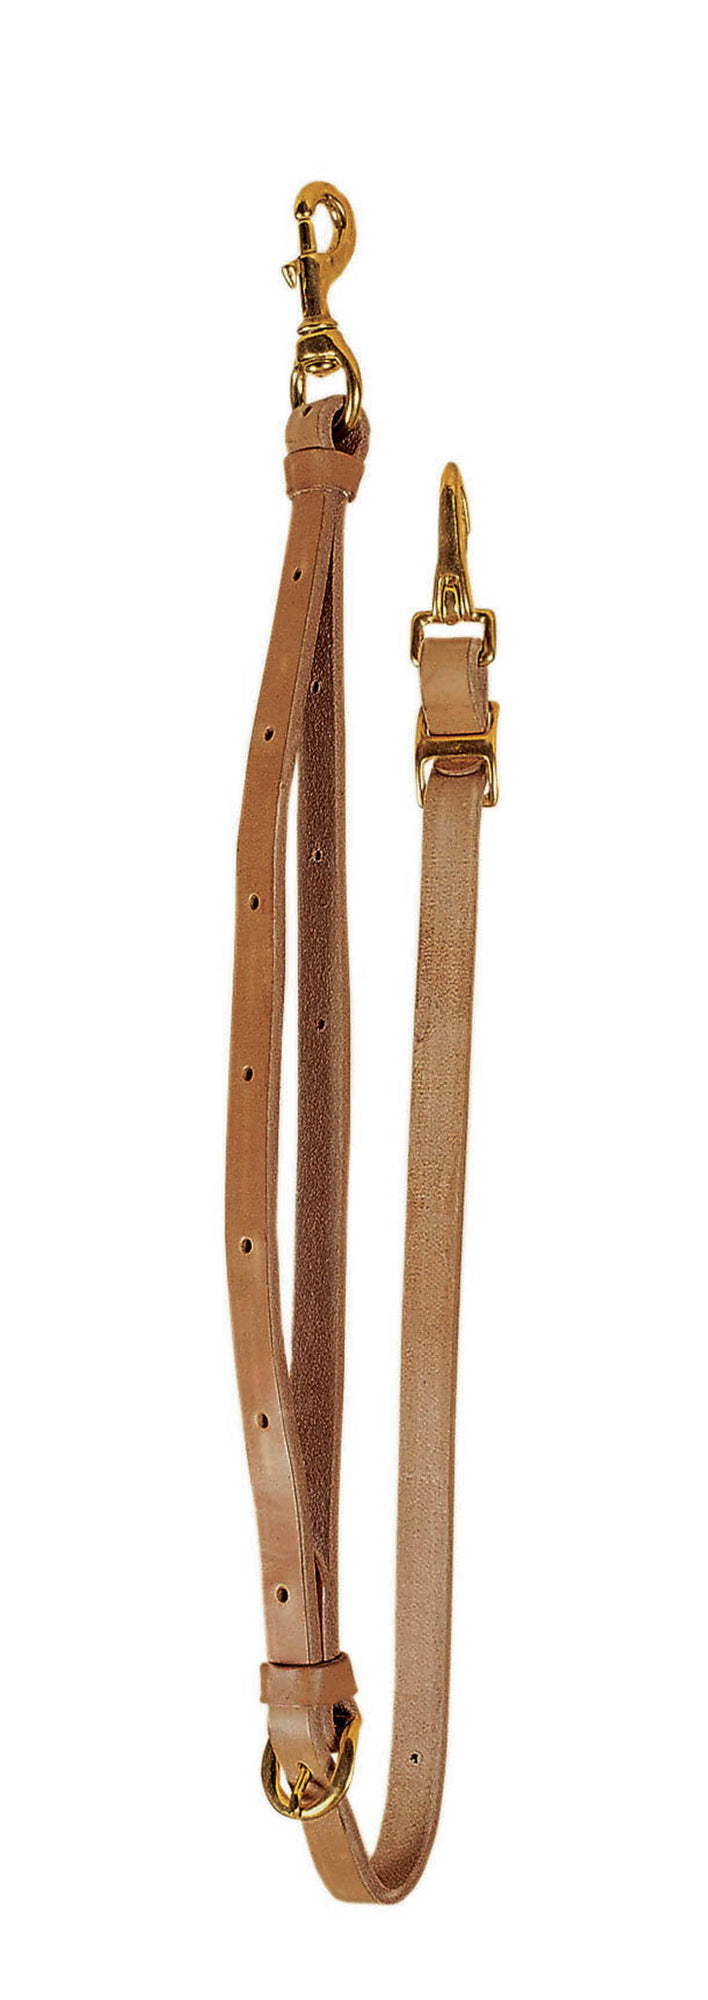 "Tory Leather 3/4"" Harness Leather Tie Down With Solid Brass Hardware"